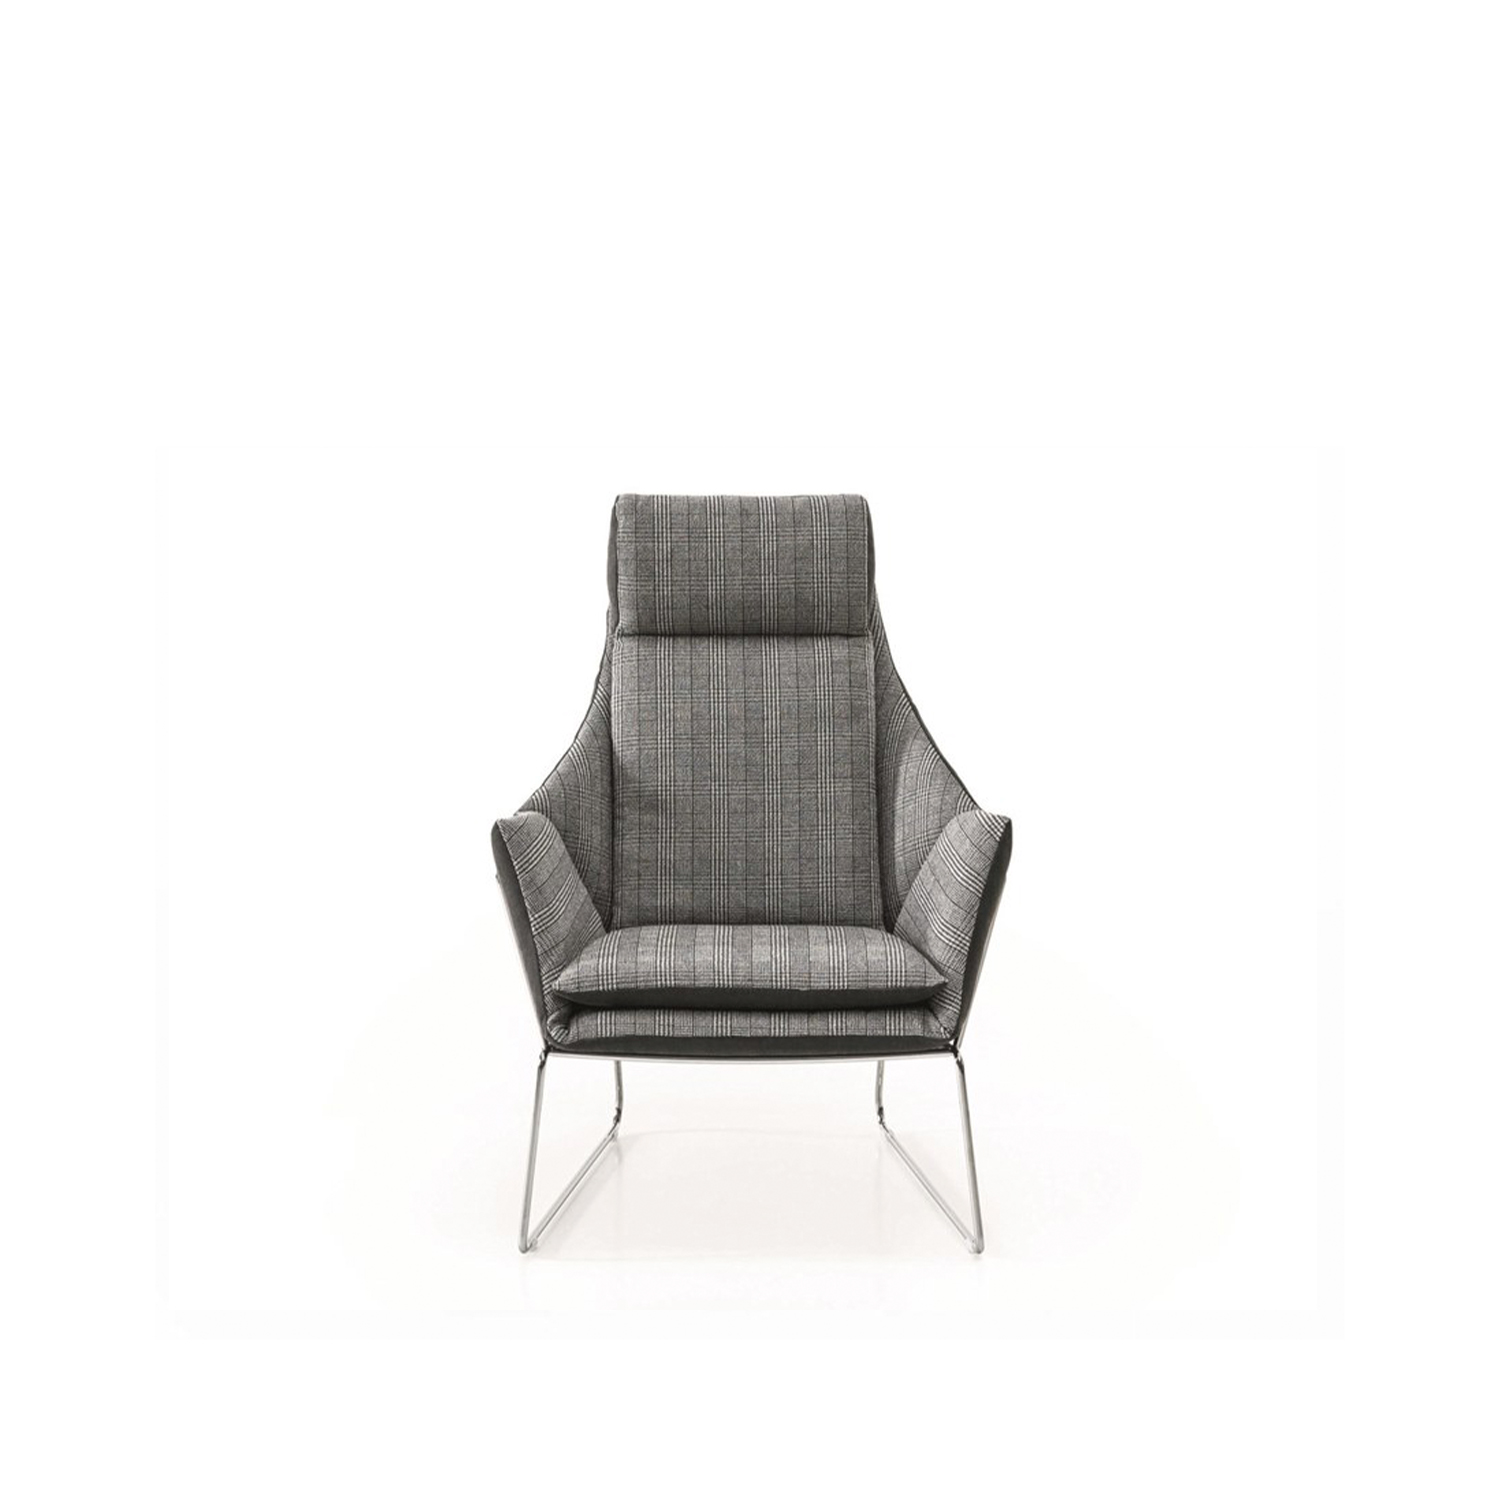 New York Bergère Lounge Armchair - The same frame as the New York armchair boasts the comfortable upholstery of the bergère.‎ The classic function of the armchair for reading or relaxing is ensured by the height of the back, the comfortable headrest and the elegant pouf.‎ An unbroken link with tradition interpreted in a contemporary style with a sophisticated lightness.‎ Fully removable covers.‎